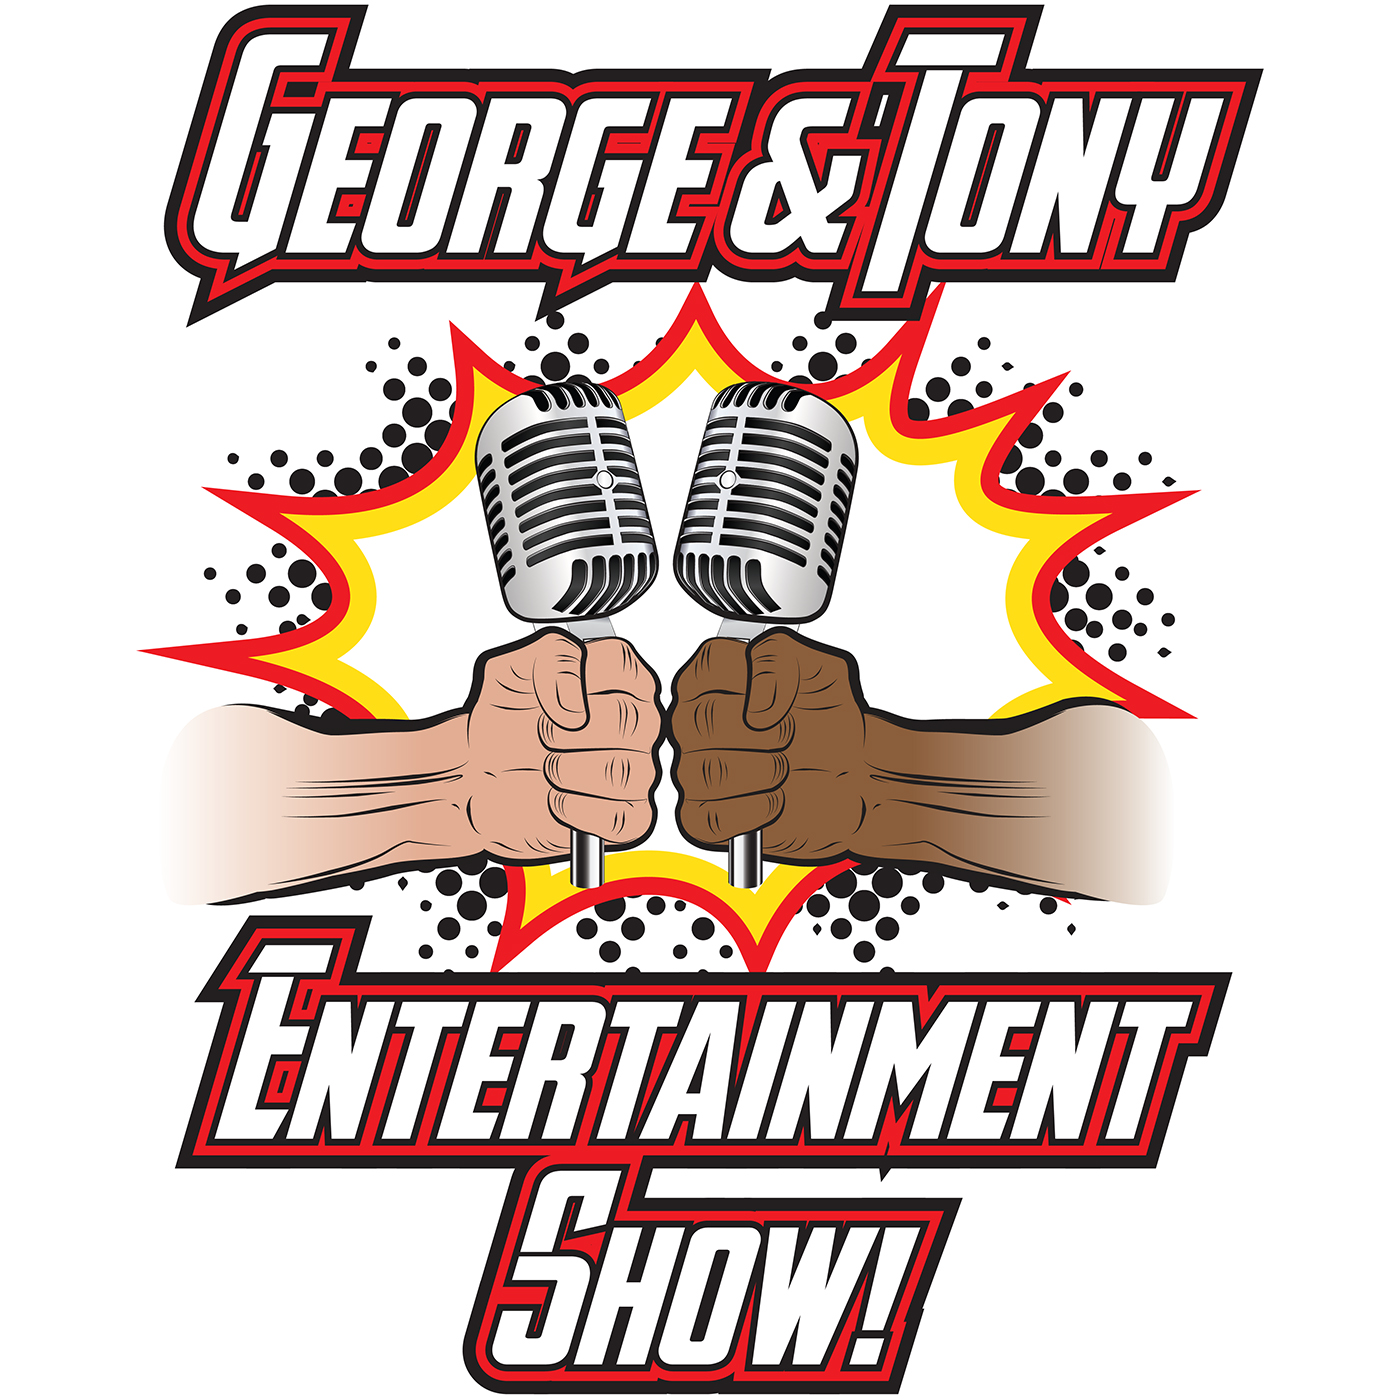 George and Tony Entertainment Show #23